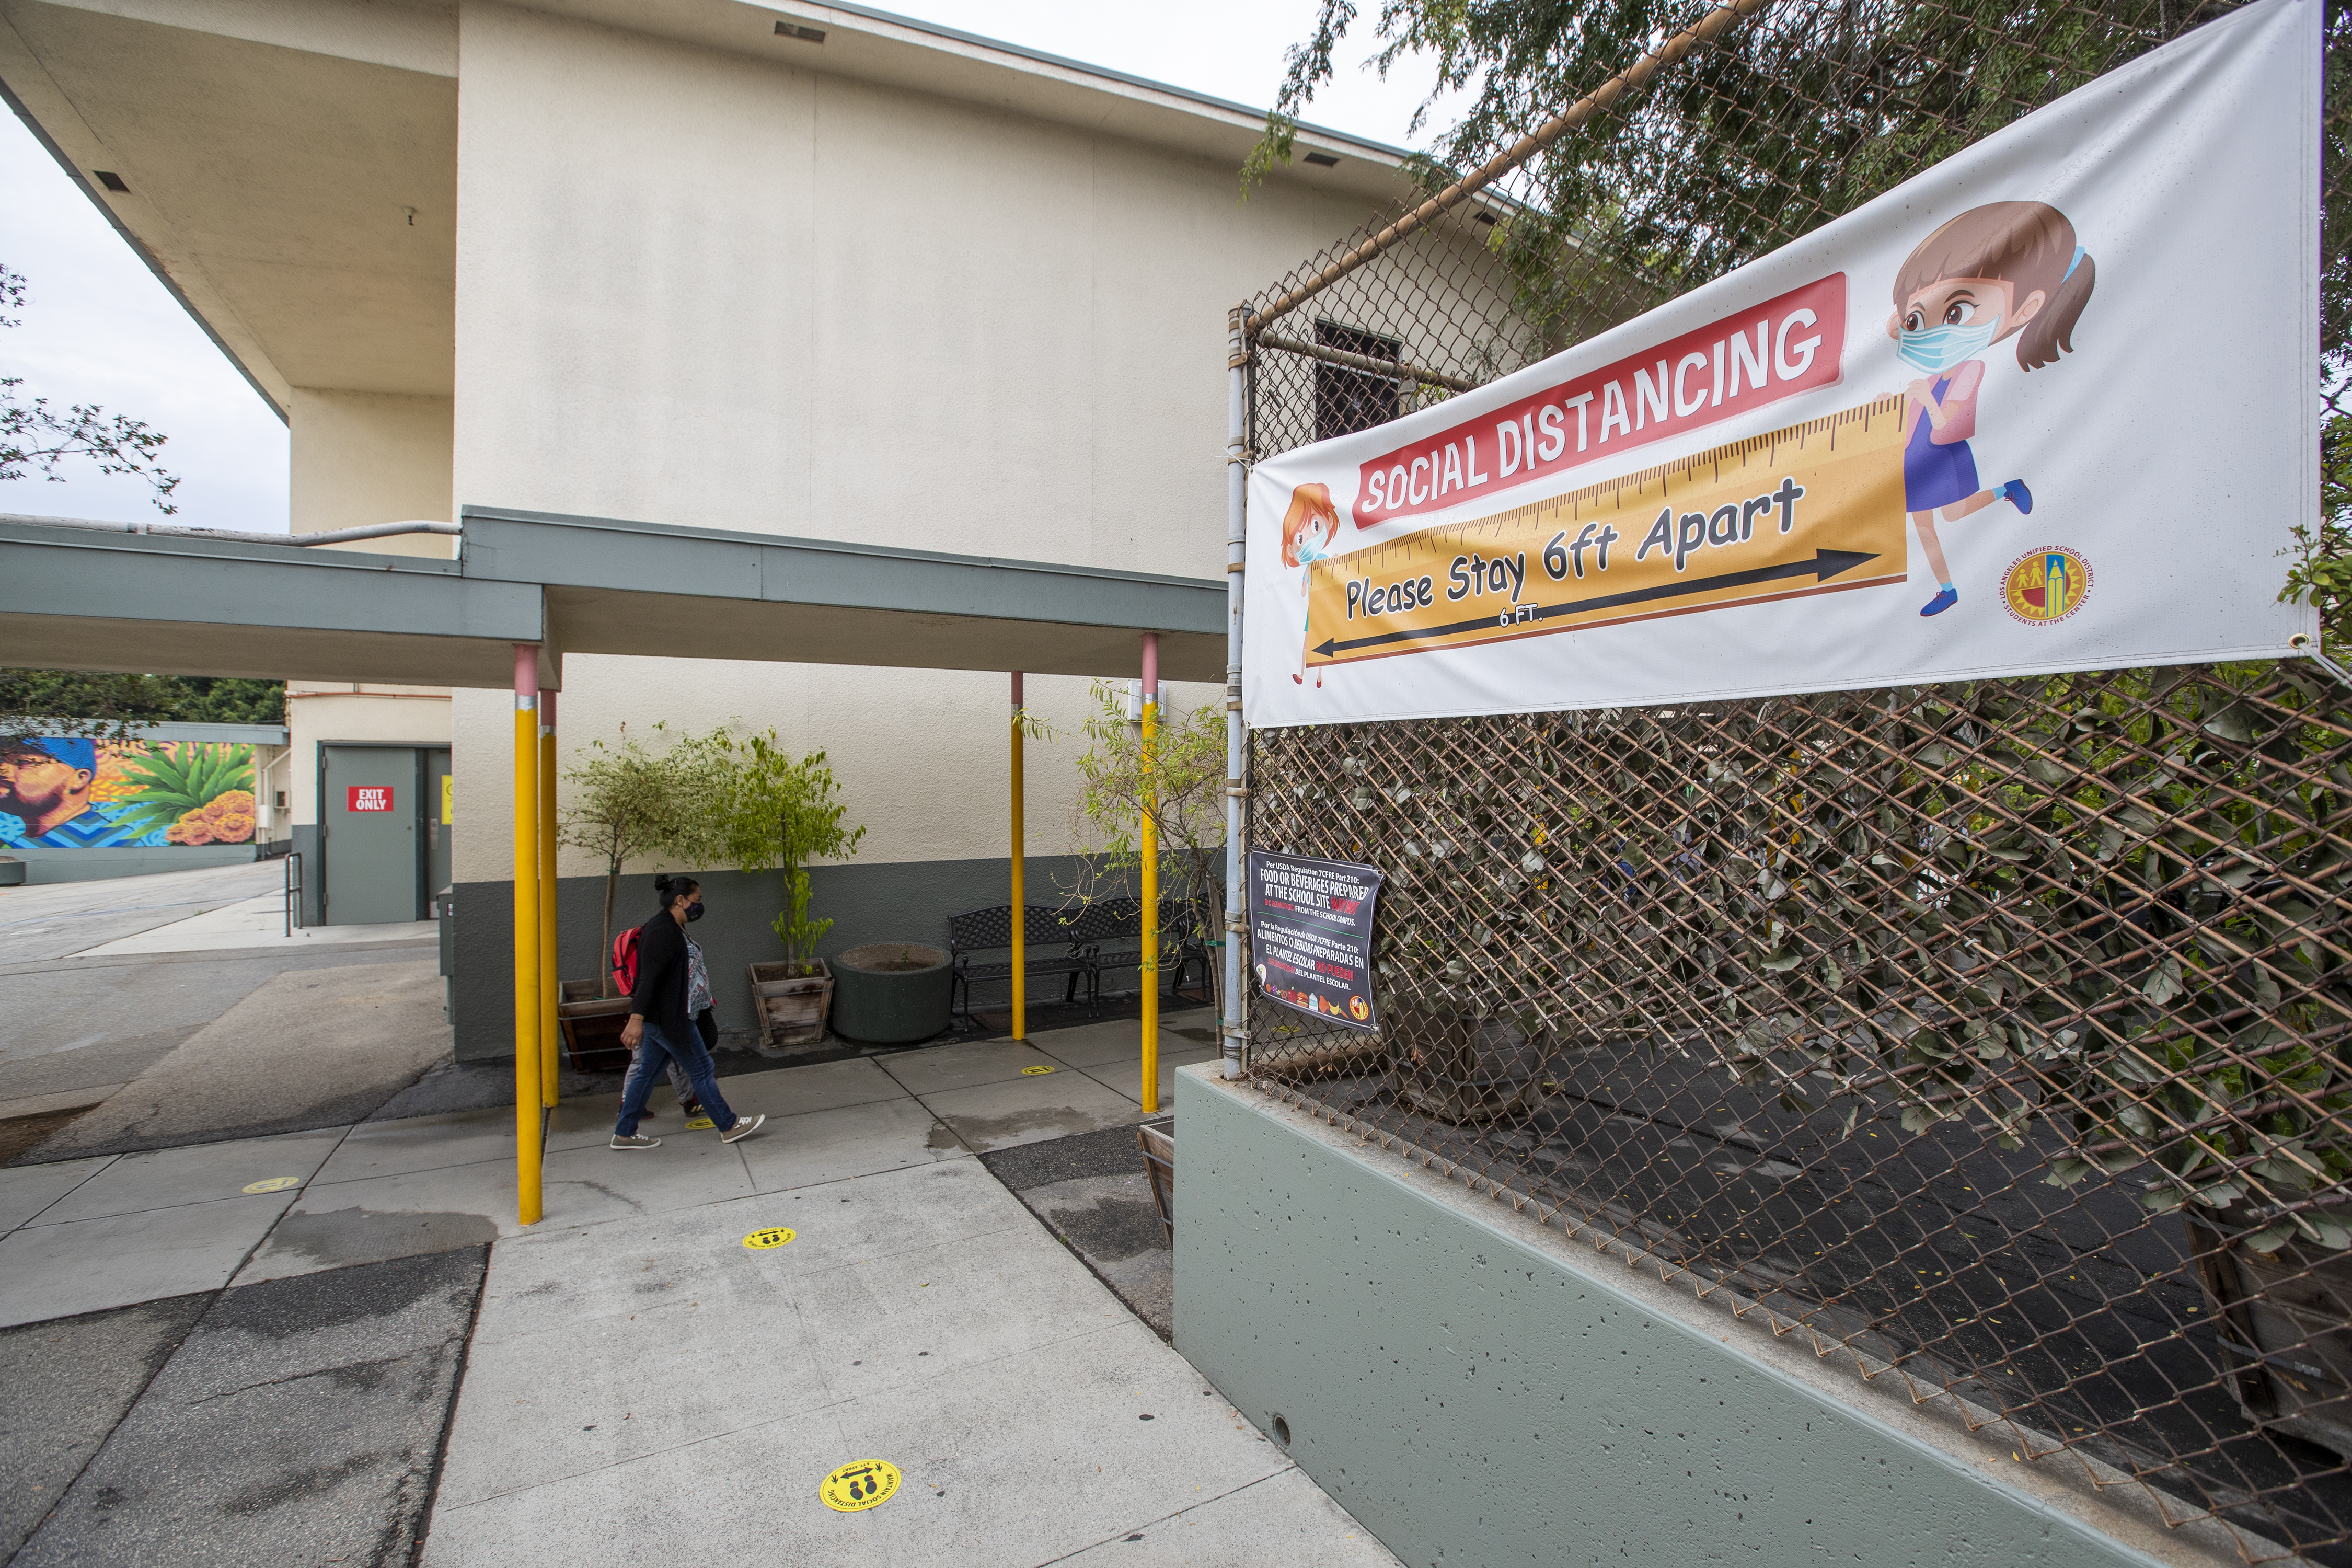 Daniel Cano, 5, and his mom, Sonia Cano, walk past COVID-19 safety signs at Euclid Avenue Elementary School in Los Angeles on July 26, 2021.